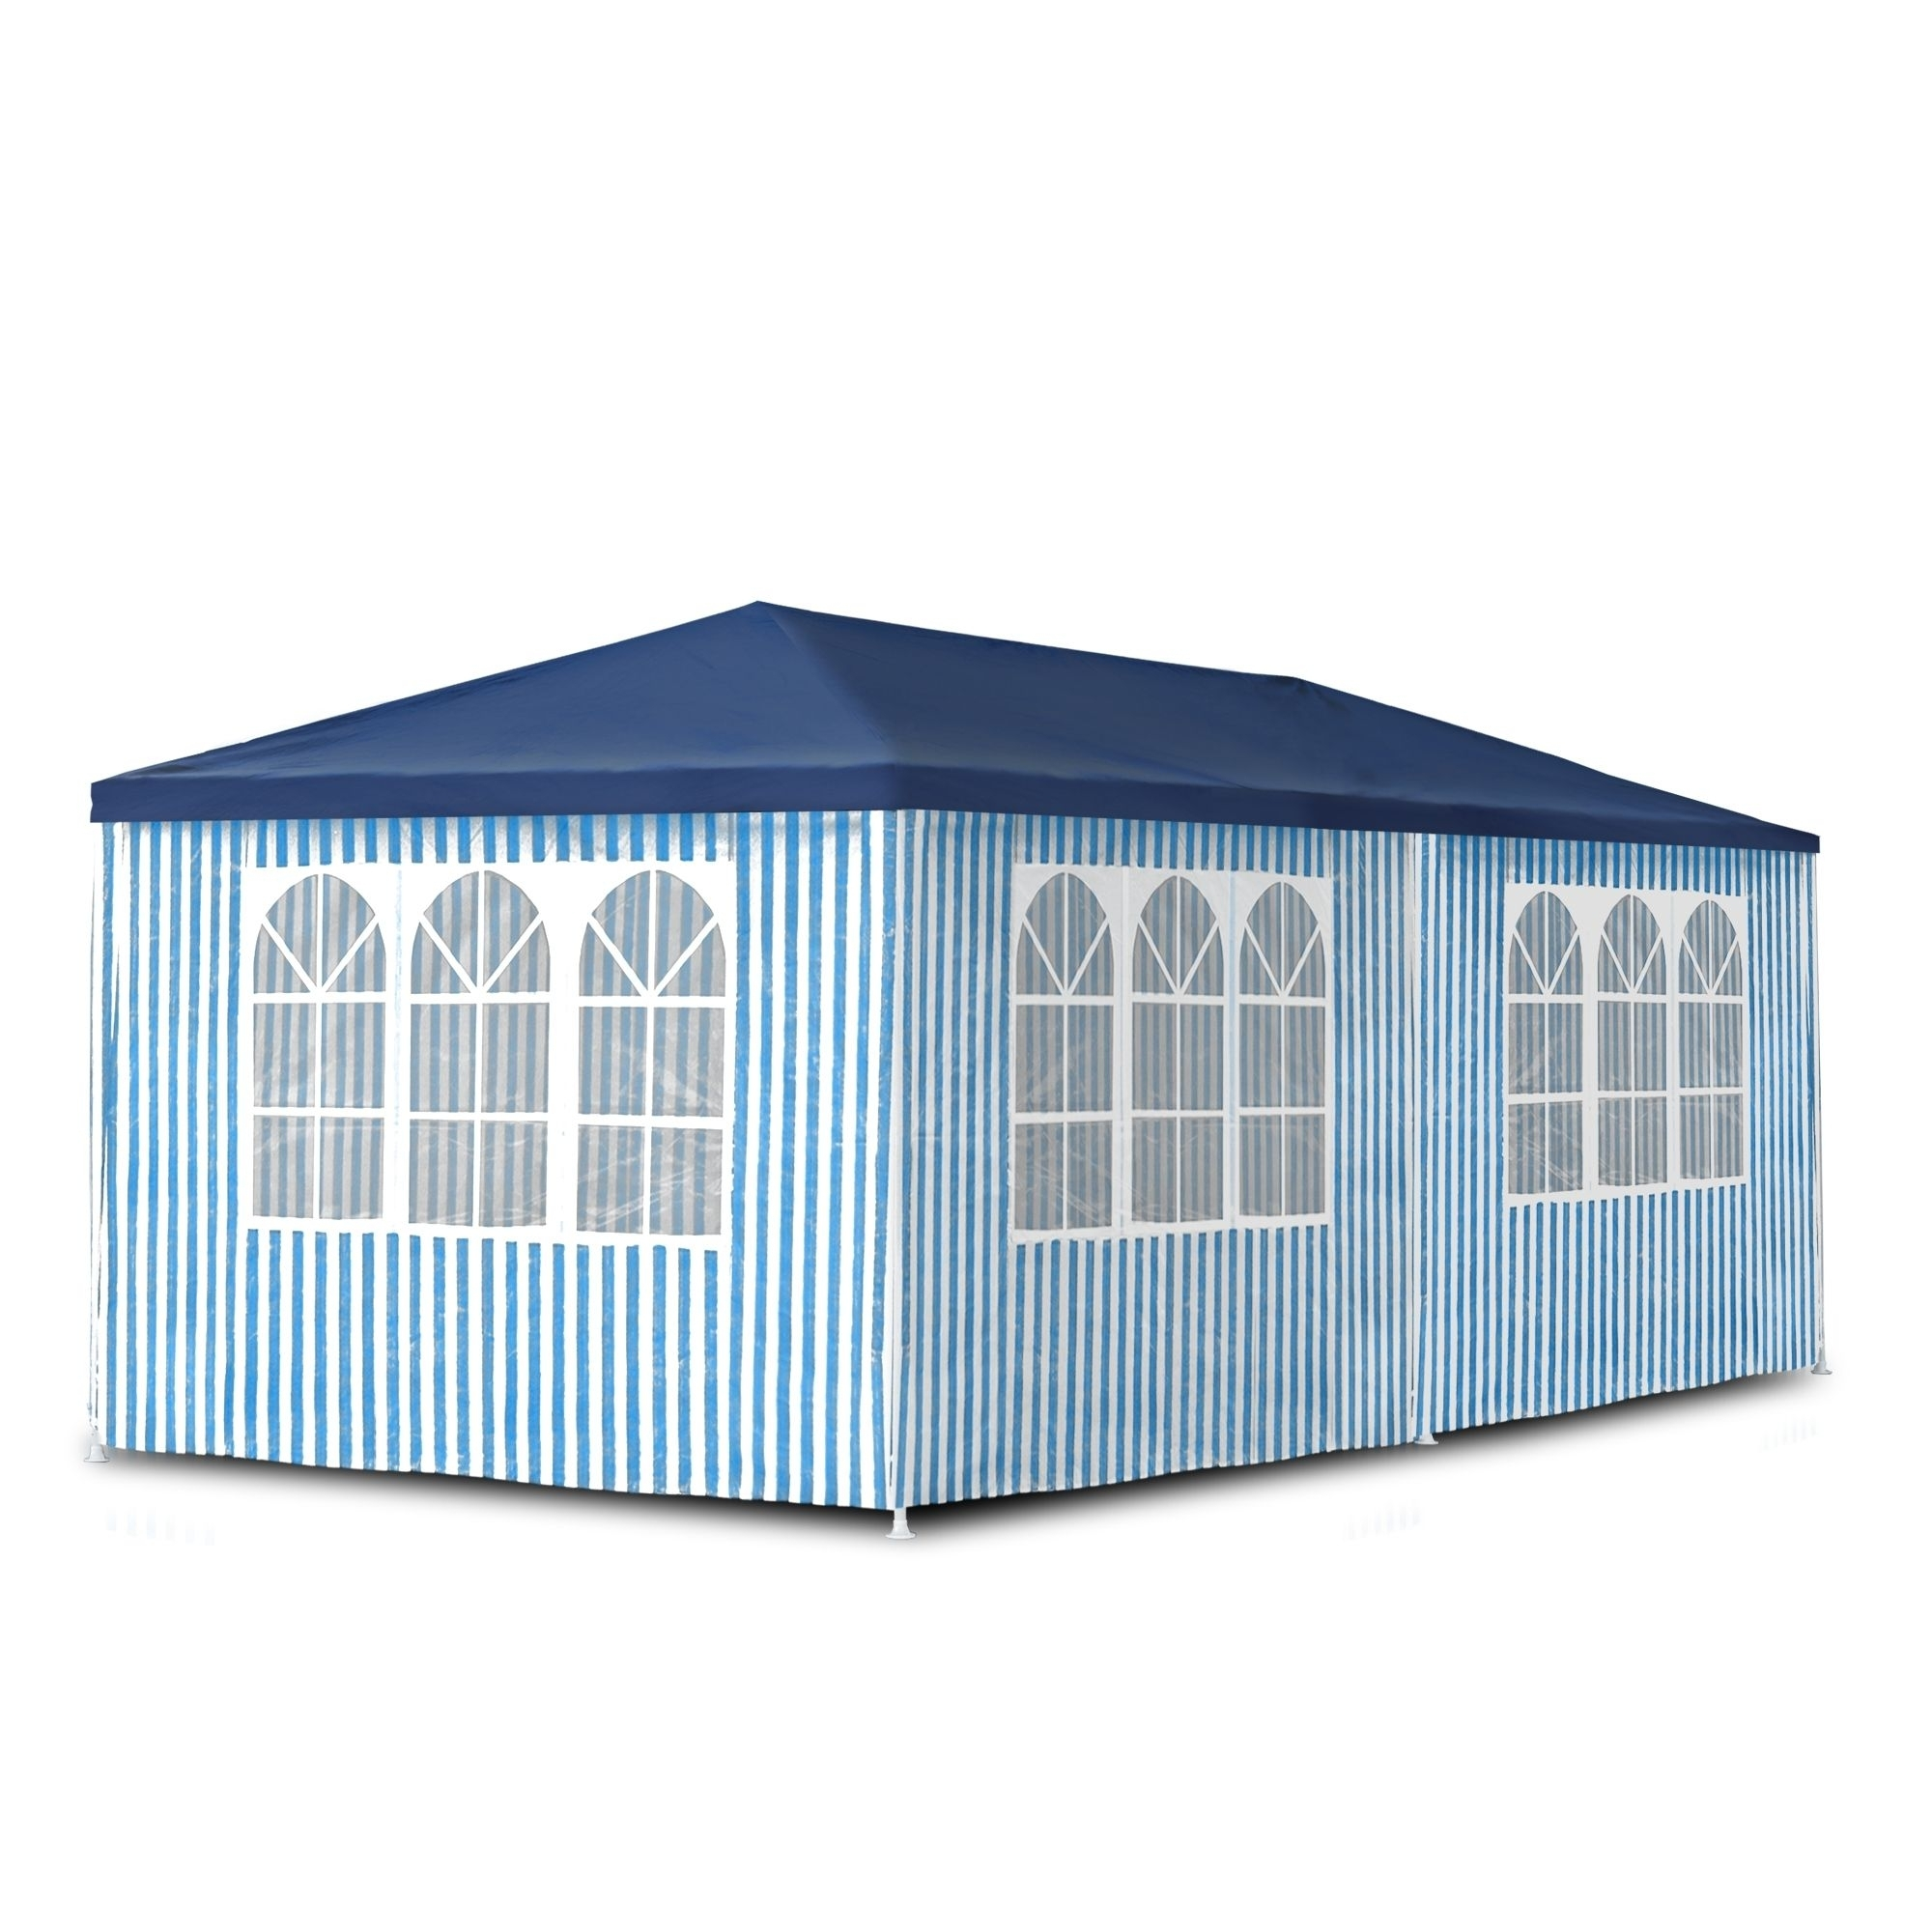 gartenpavillon 3 x 6 m pavillon pavillion partyzelt festzelt gartenzelt mit 6 seitenw nden. Black Bedroom Furniture Sets. Home Design Ideas